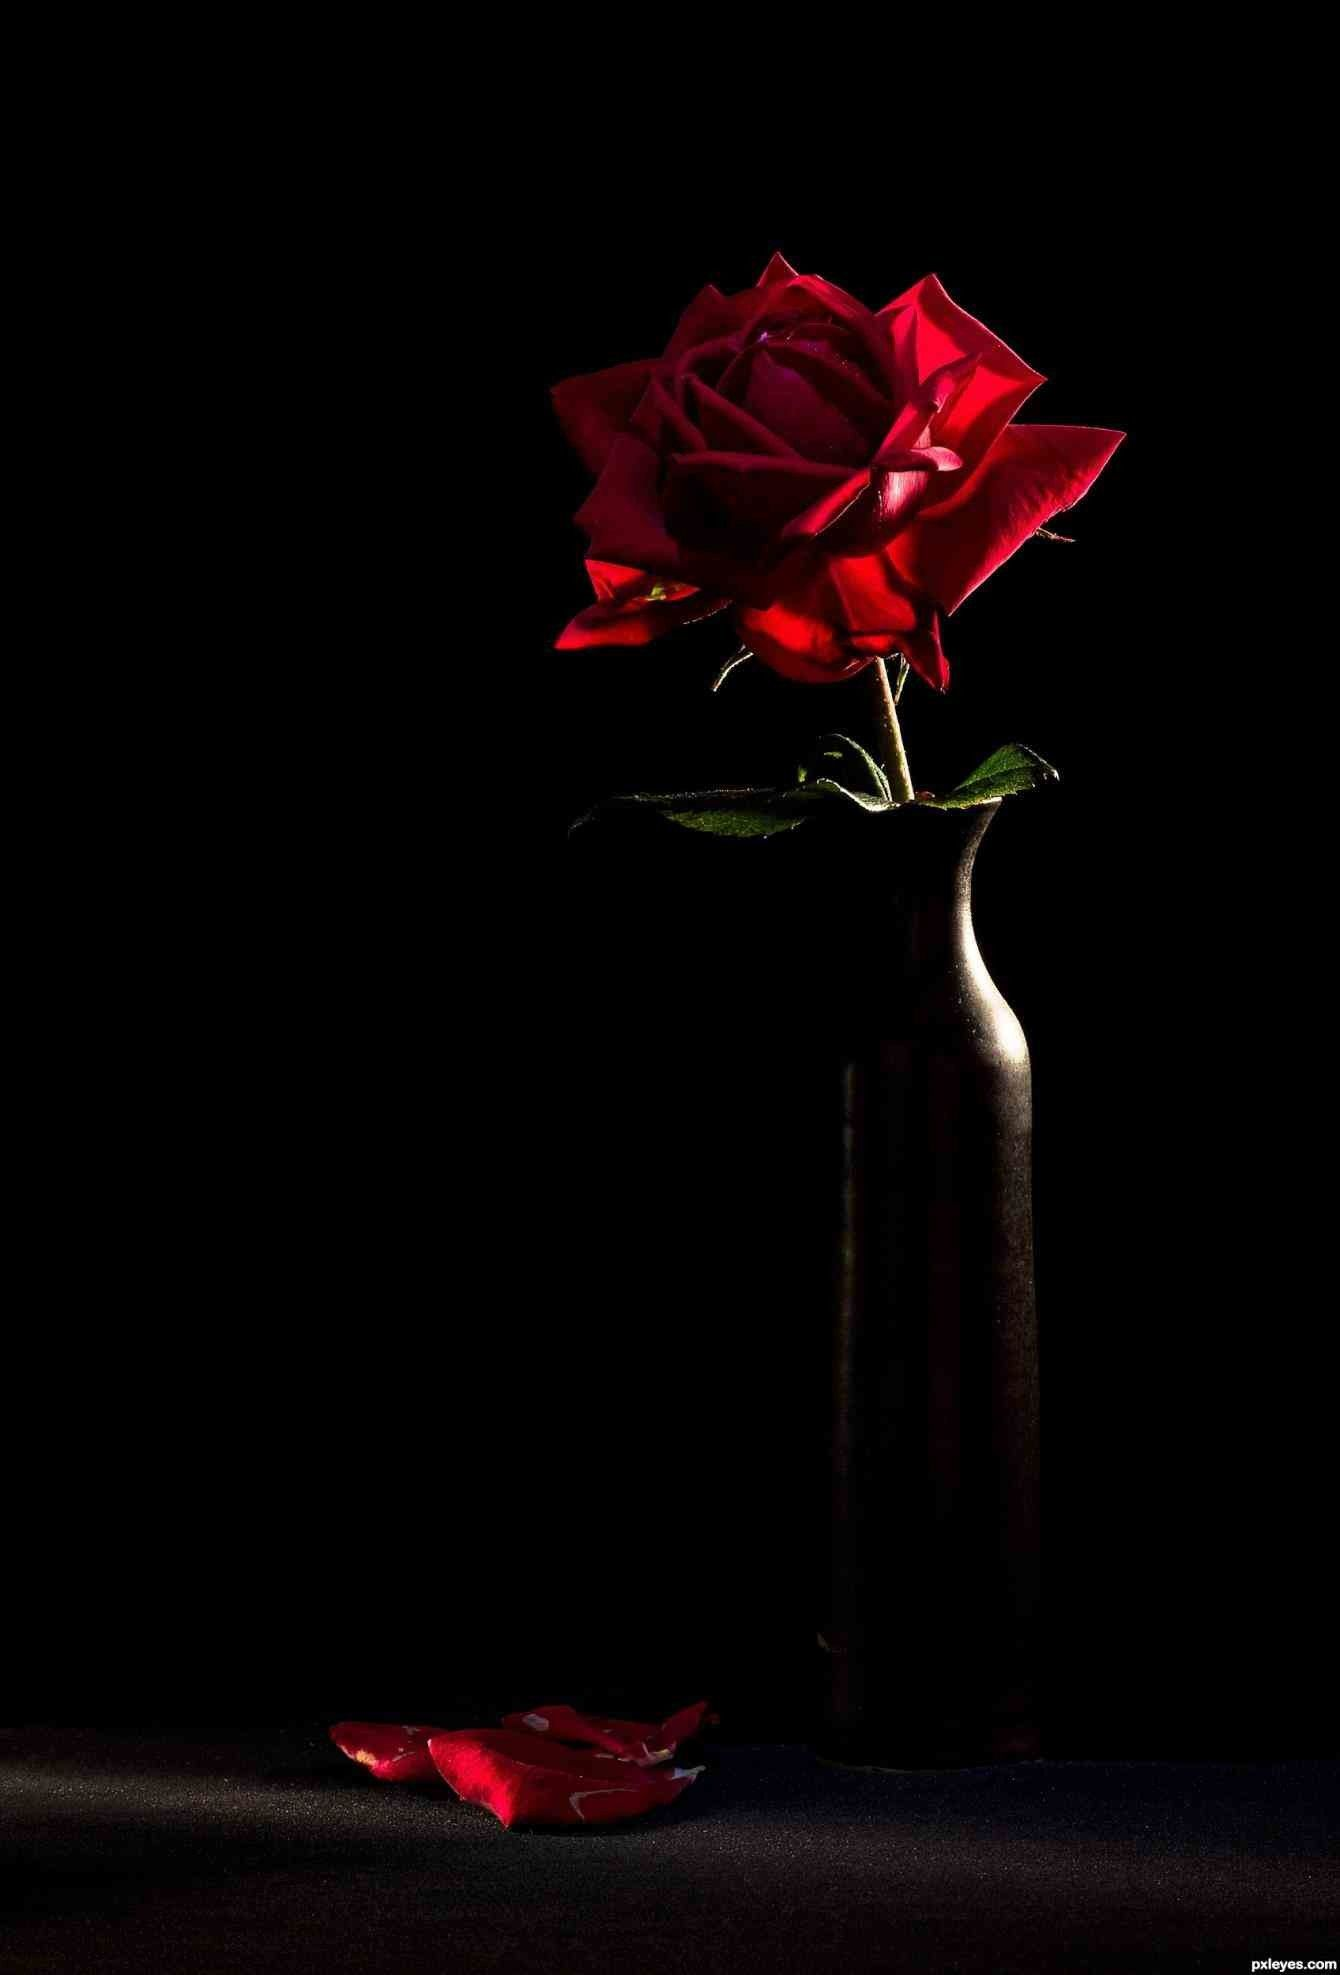 1340x1975 Red Rose with Black Background (42+ images)